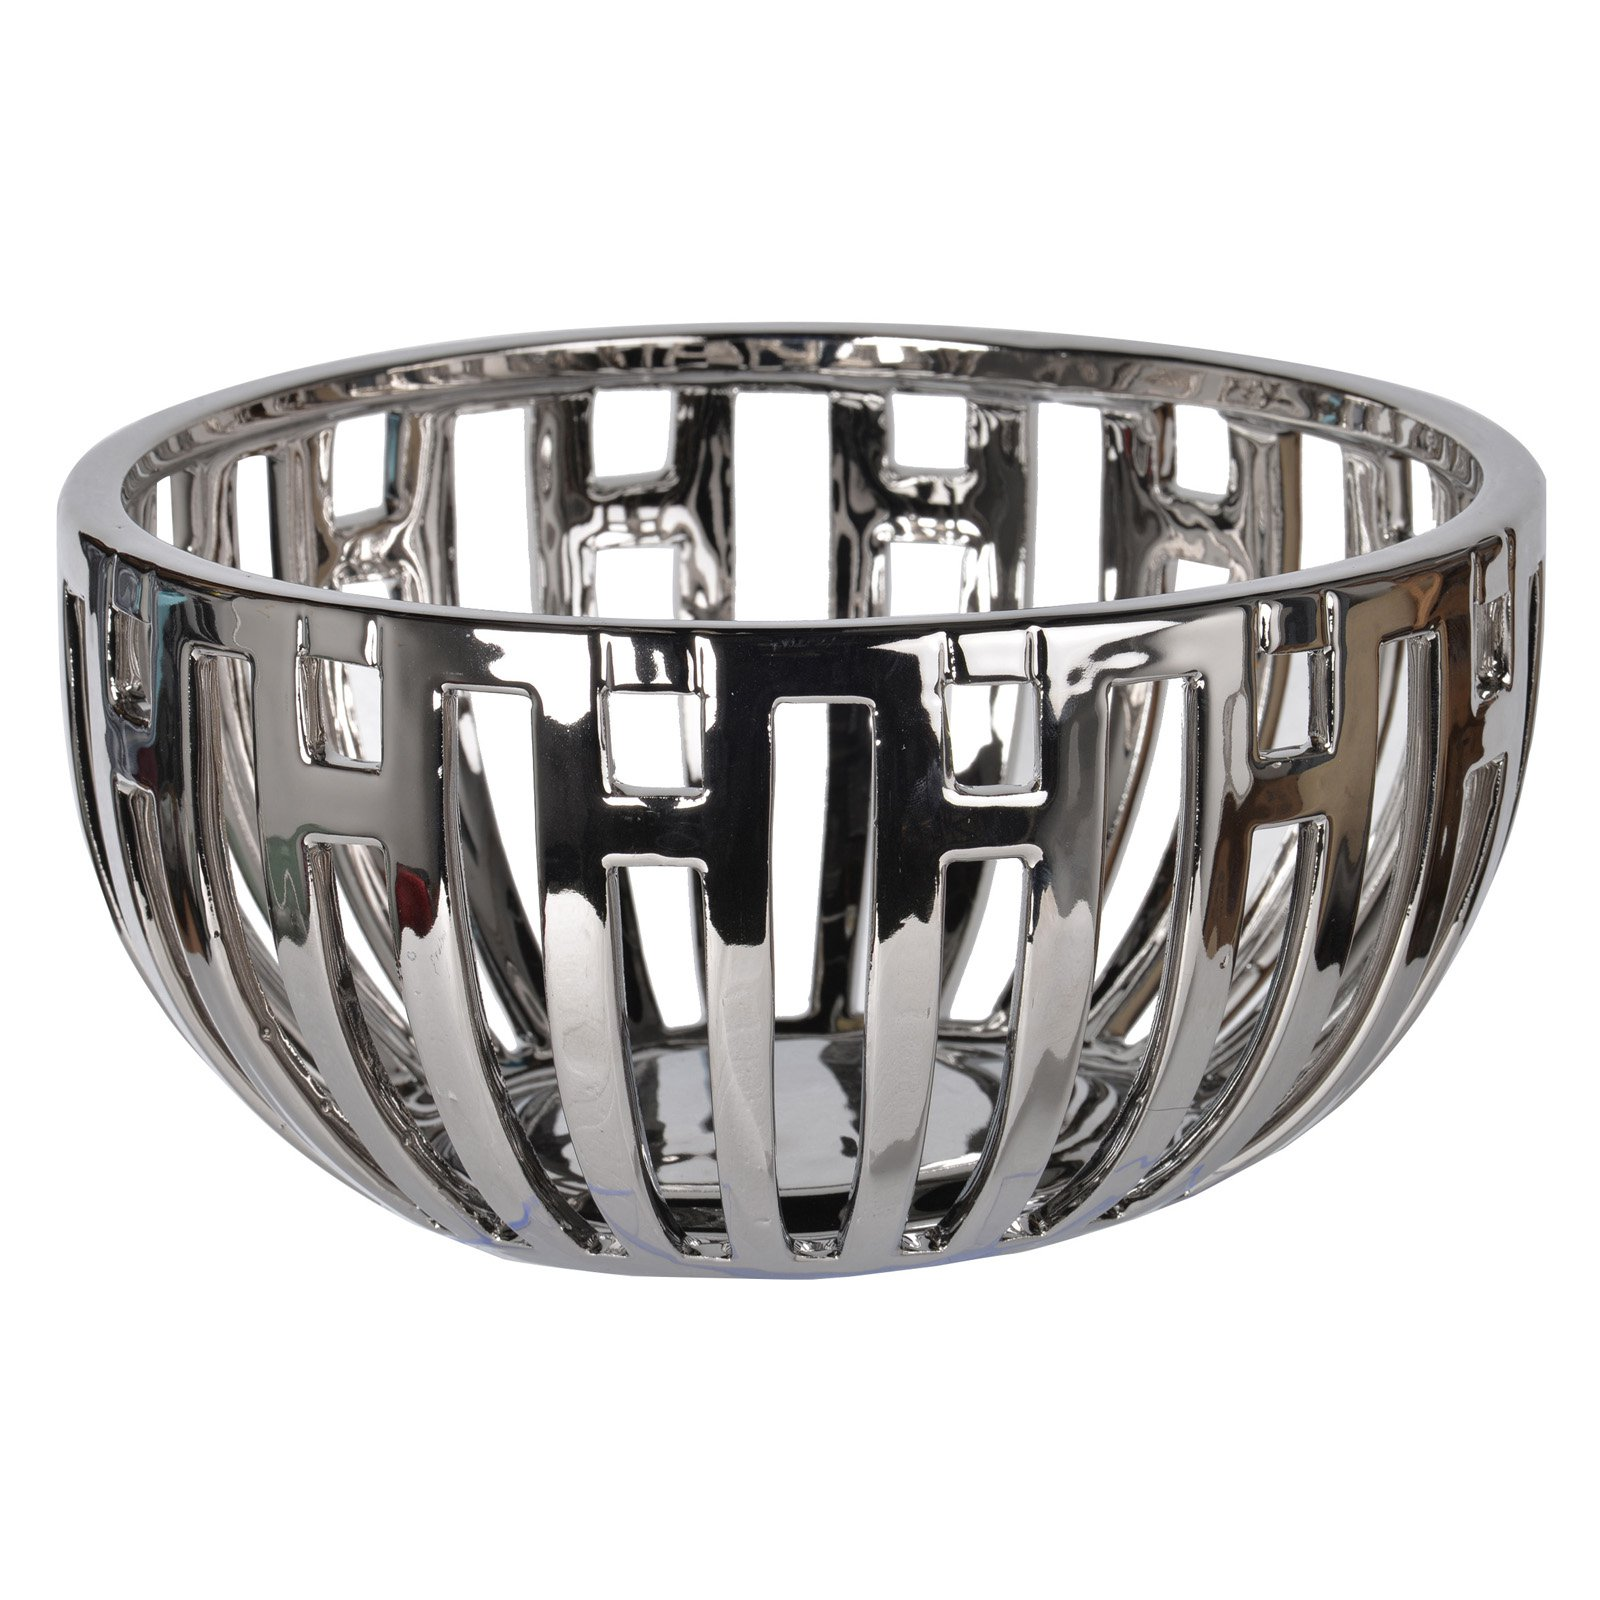 A and B Home Metro Metallic Decorative Centerpiece Bowl by